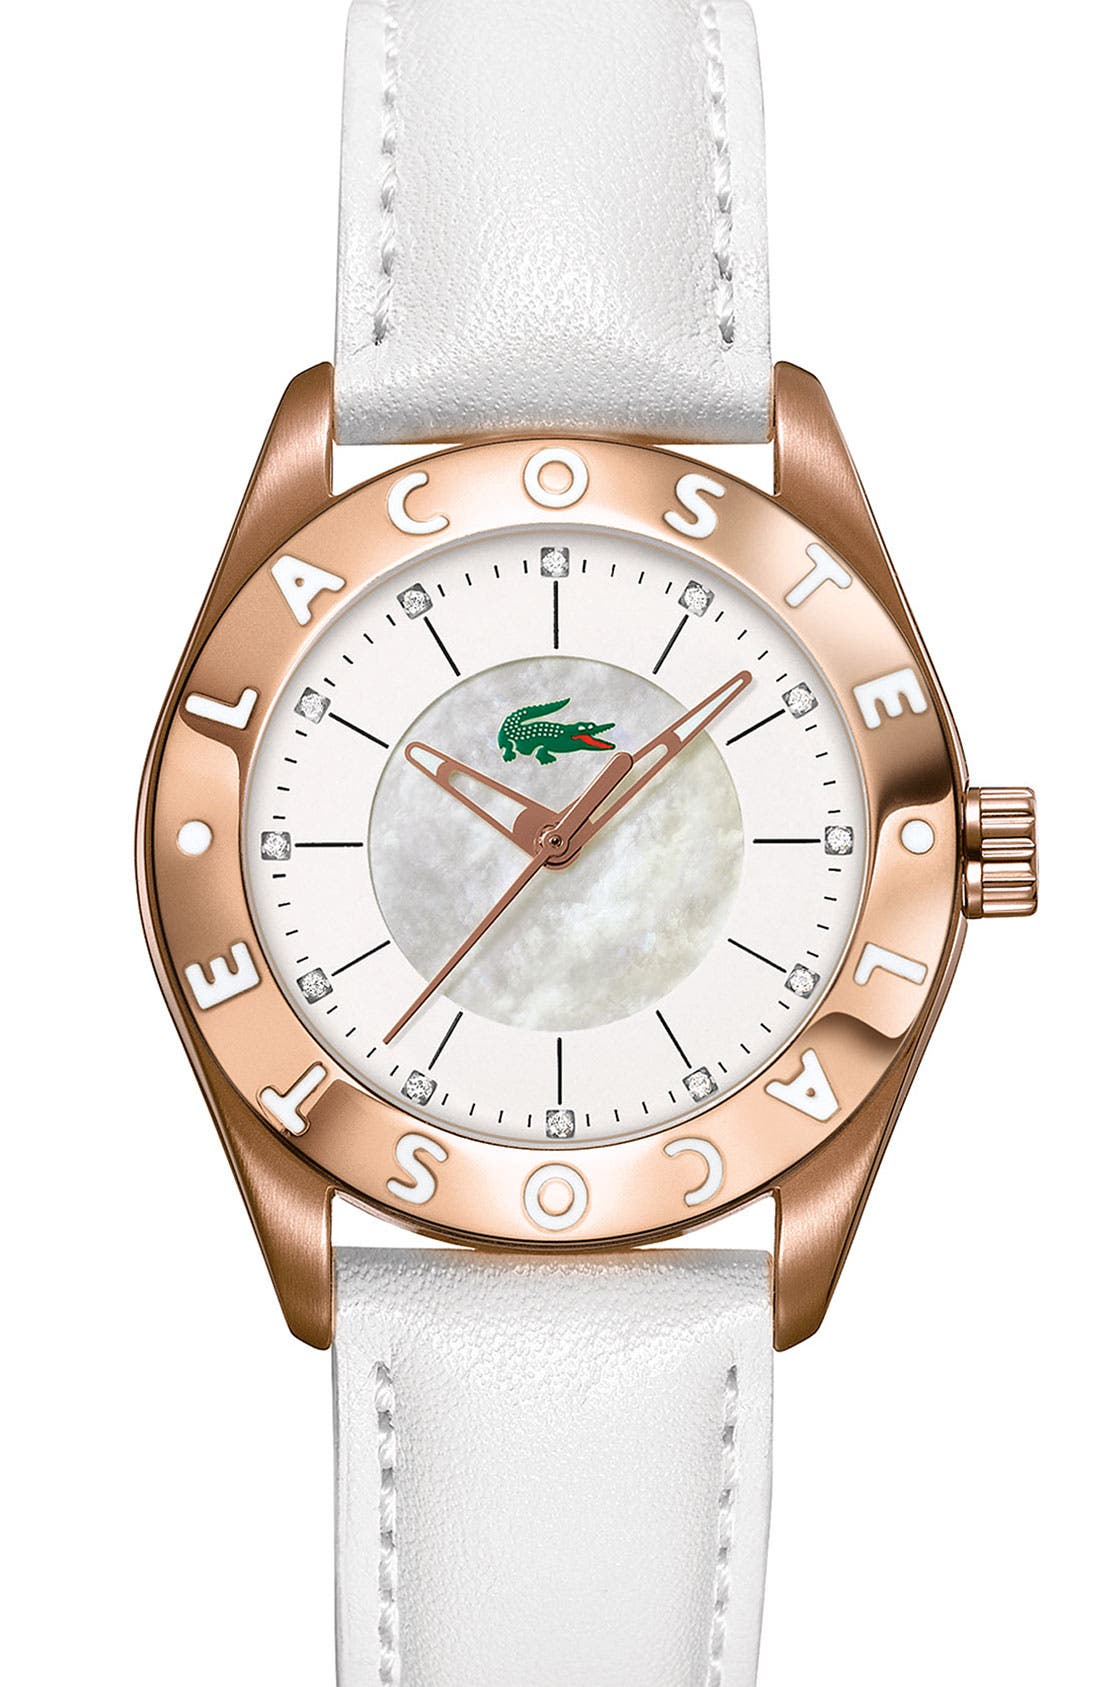 Main Image - Lacoste 'Biarritz' Stainless Steel Watch